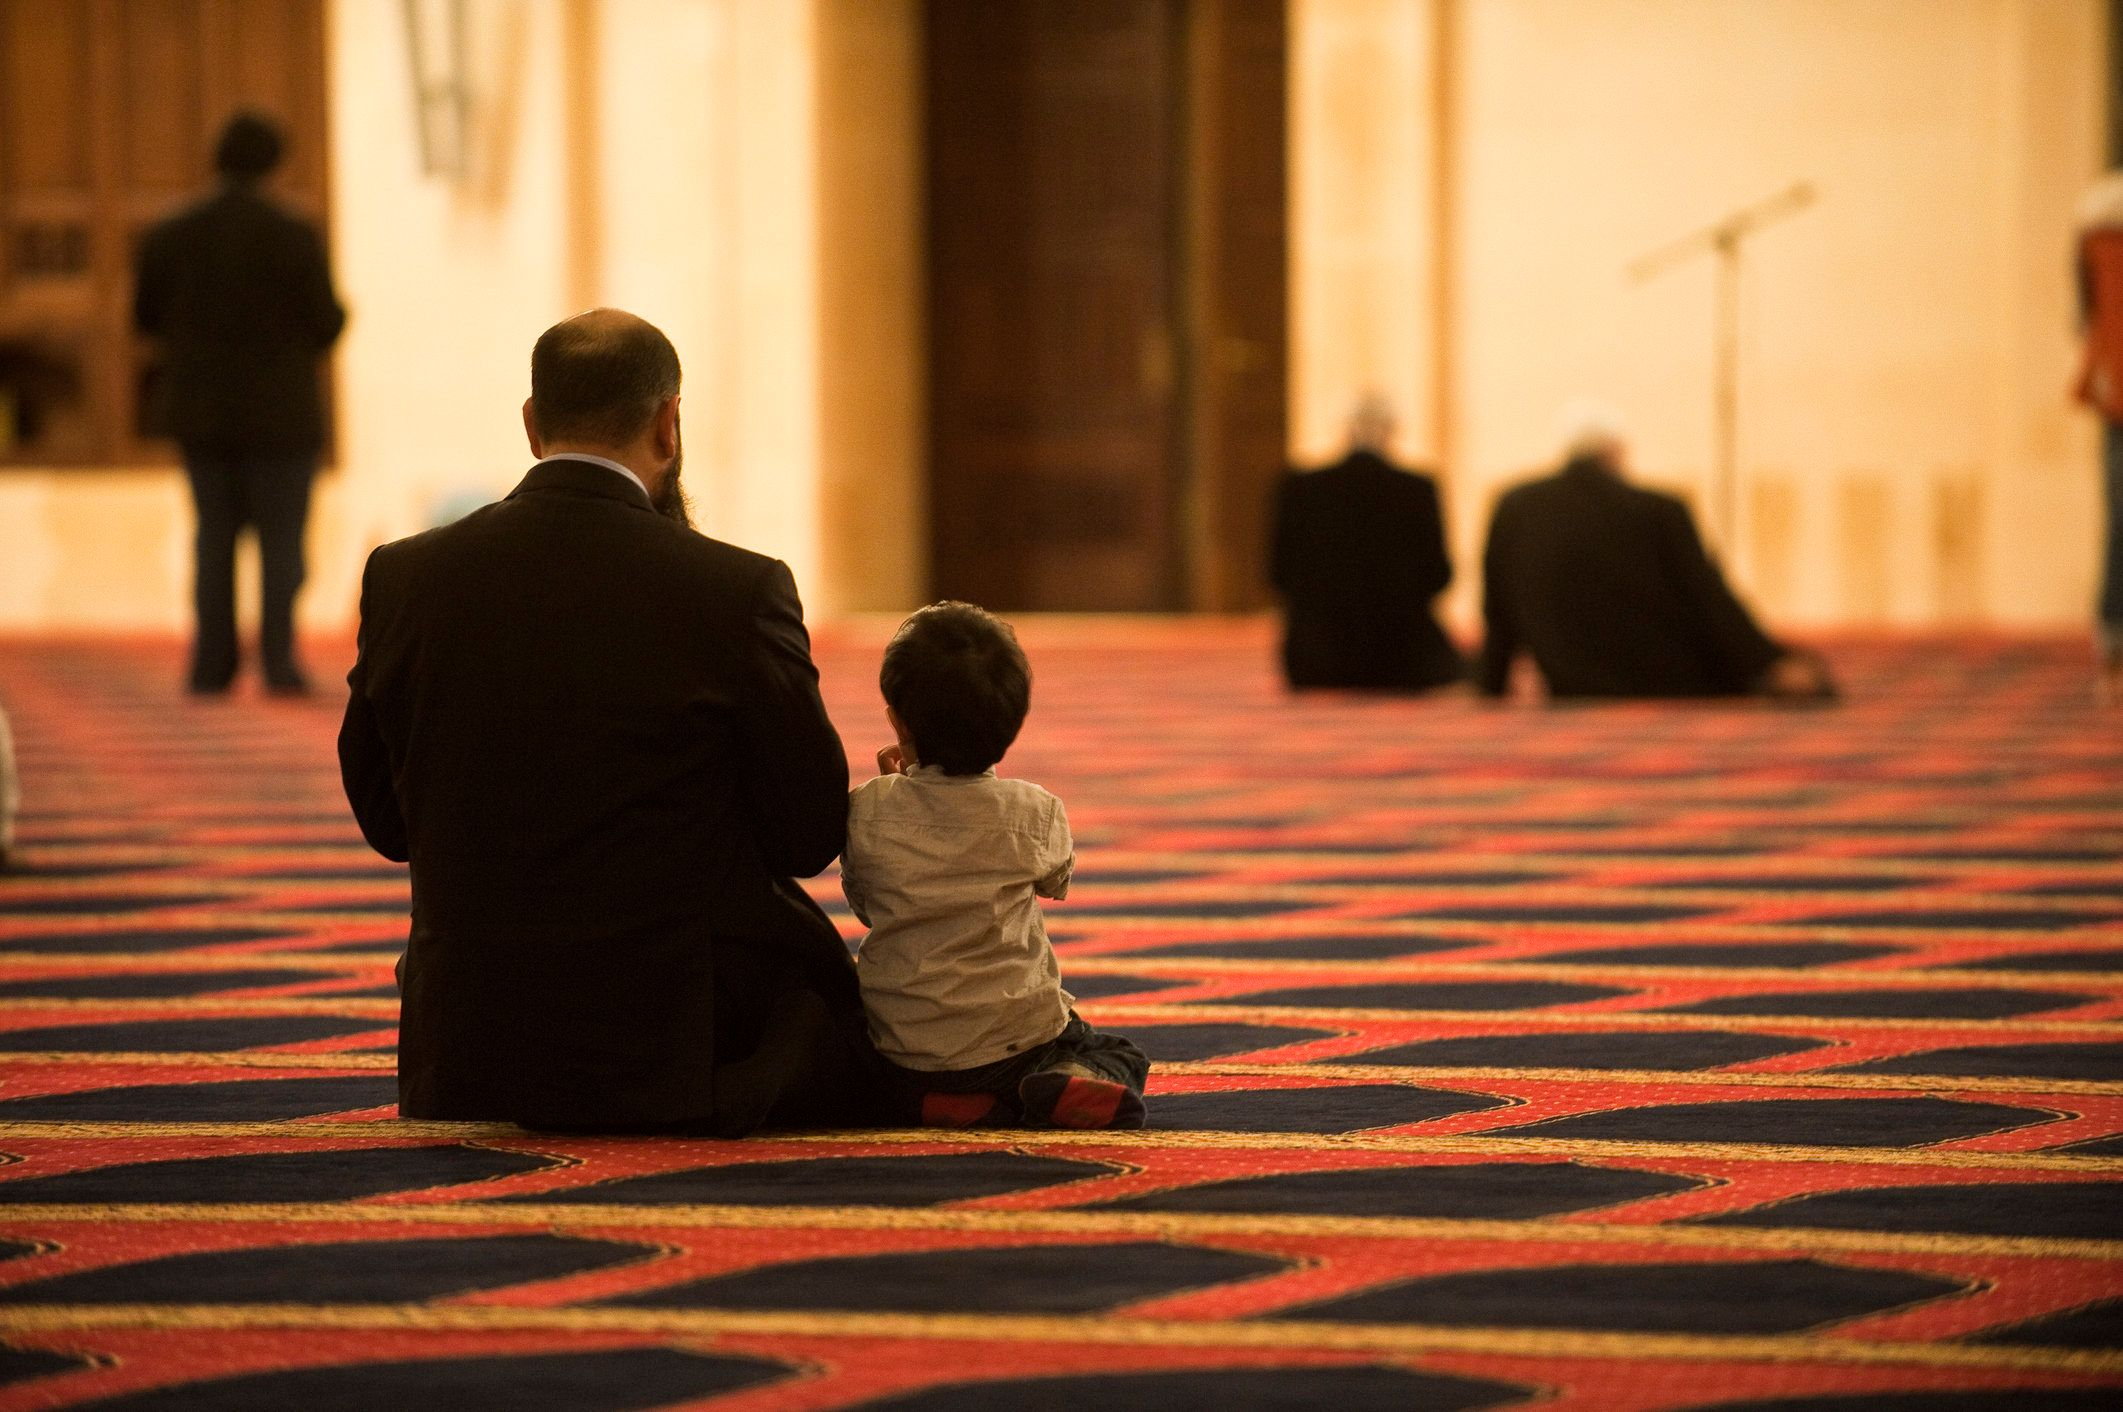 Lebanon, Beirut, Al Omari, prayer of a father and son